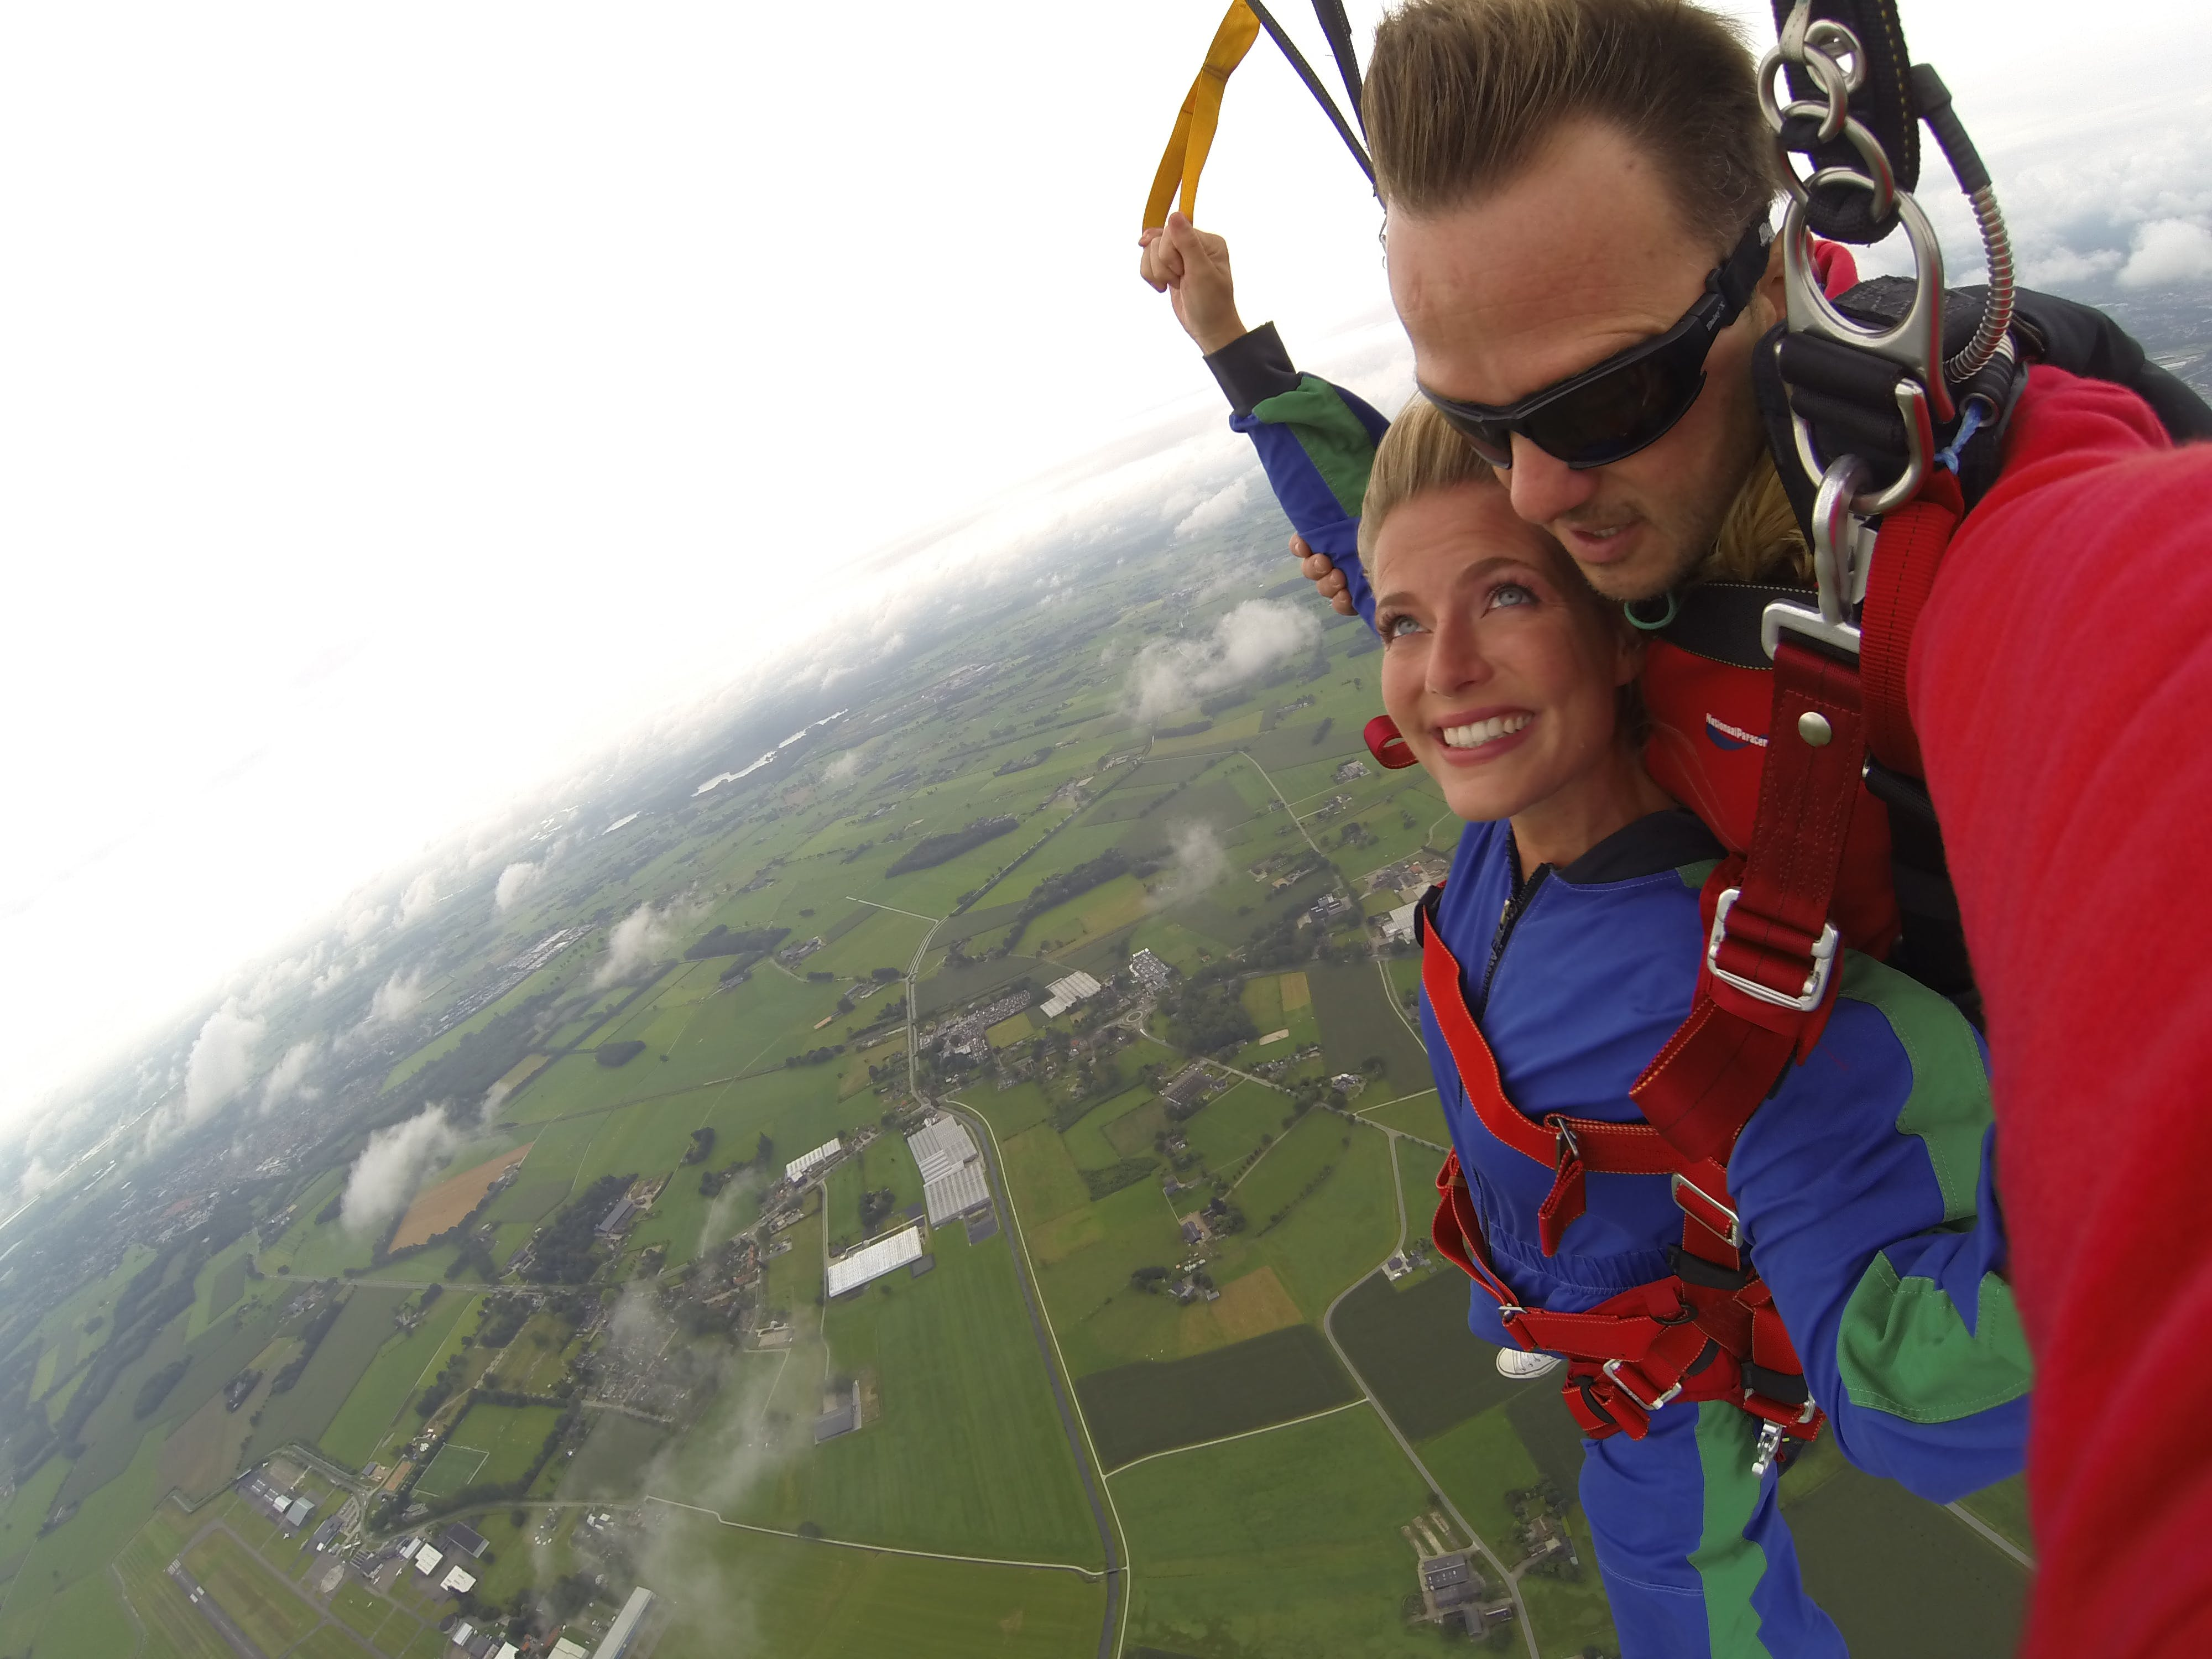 Couple Wears Red and Blue Long-sleeved Overalls and Body Harness With Parachute on Mid-air